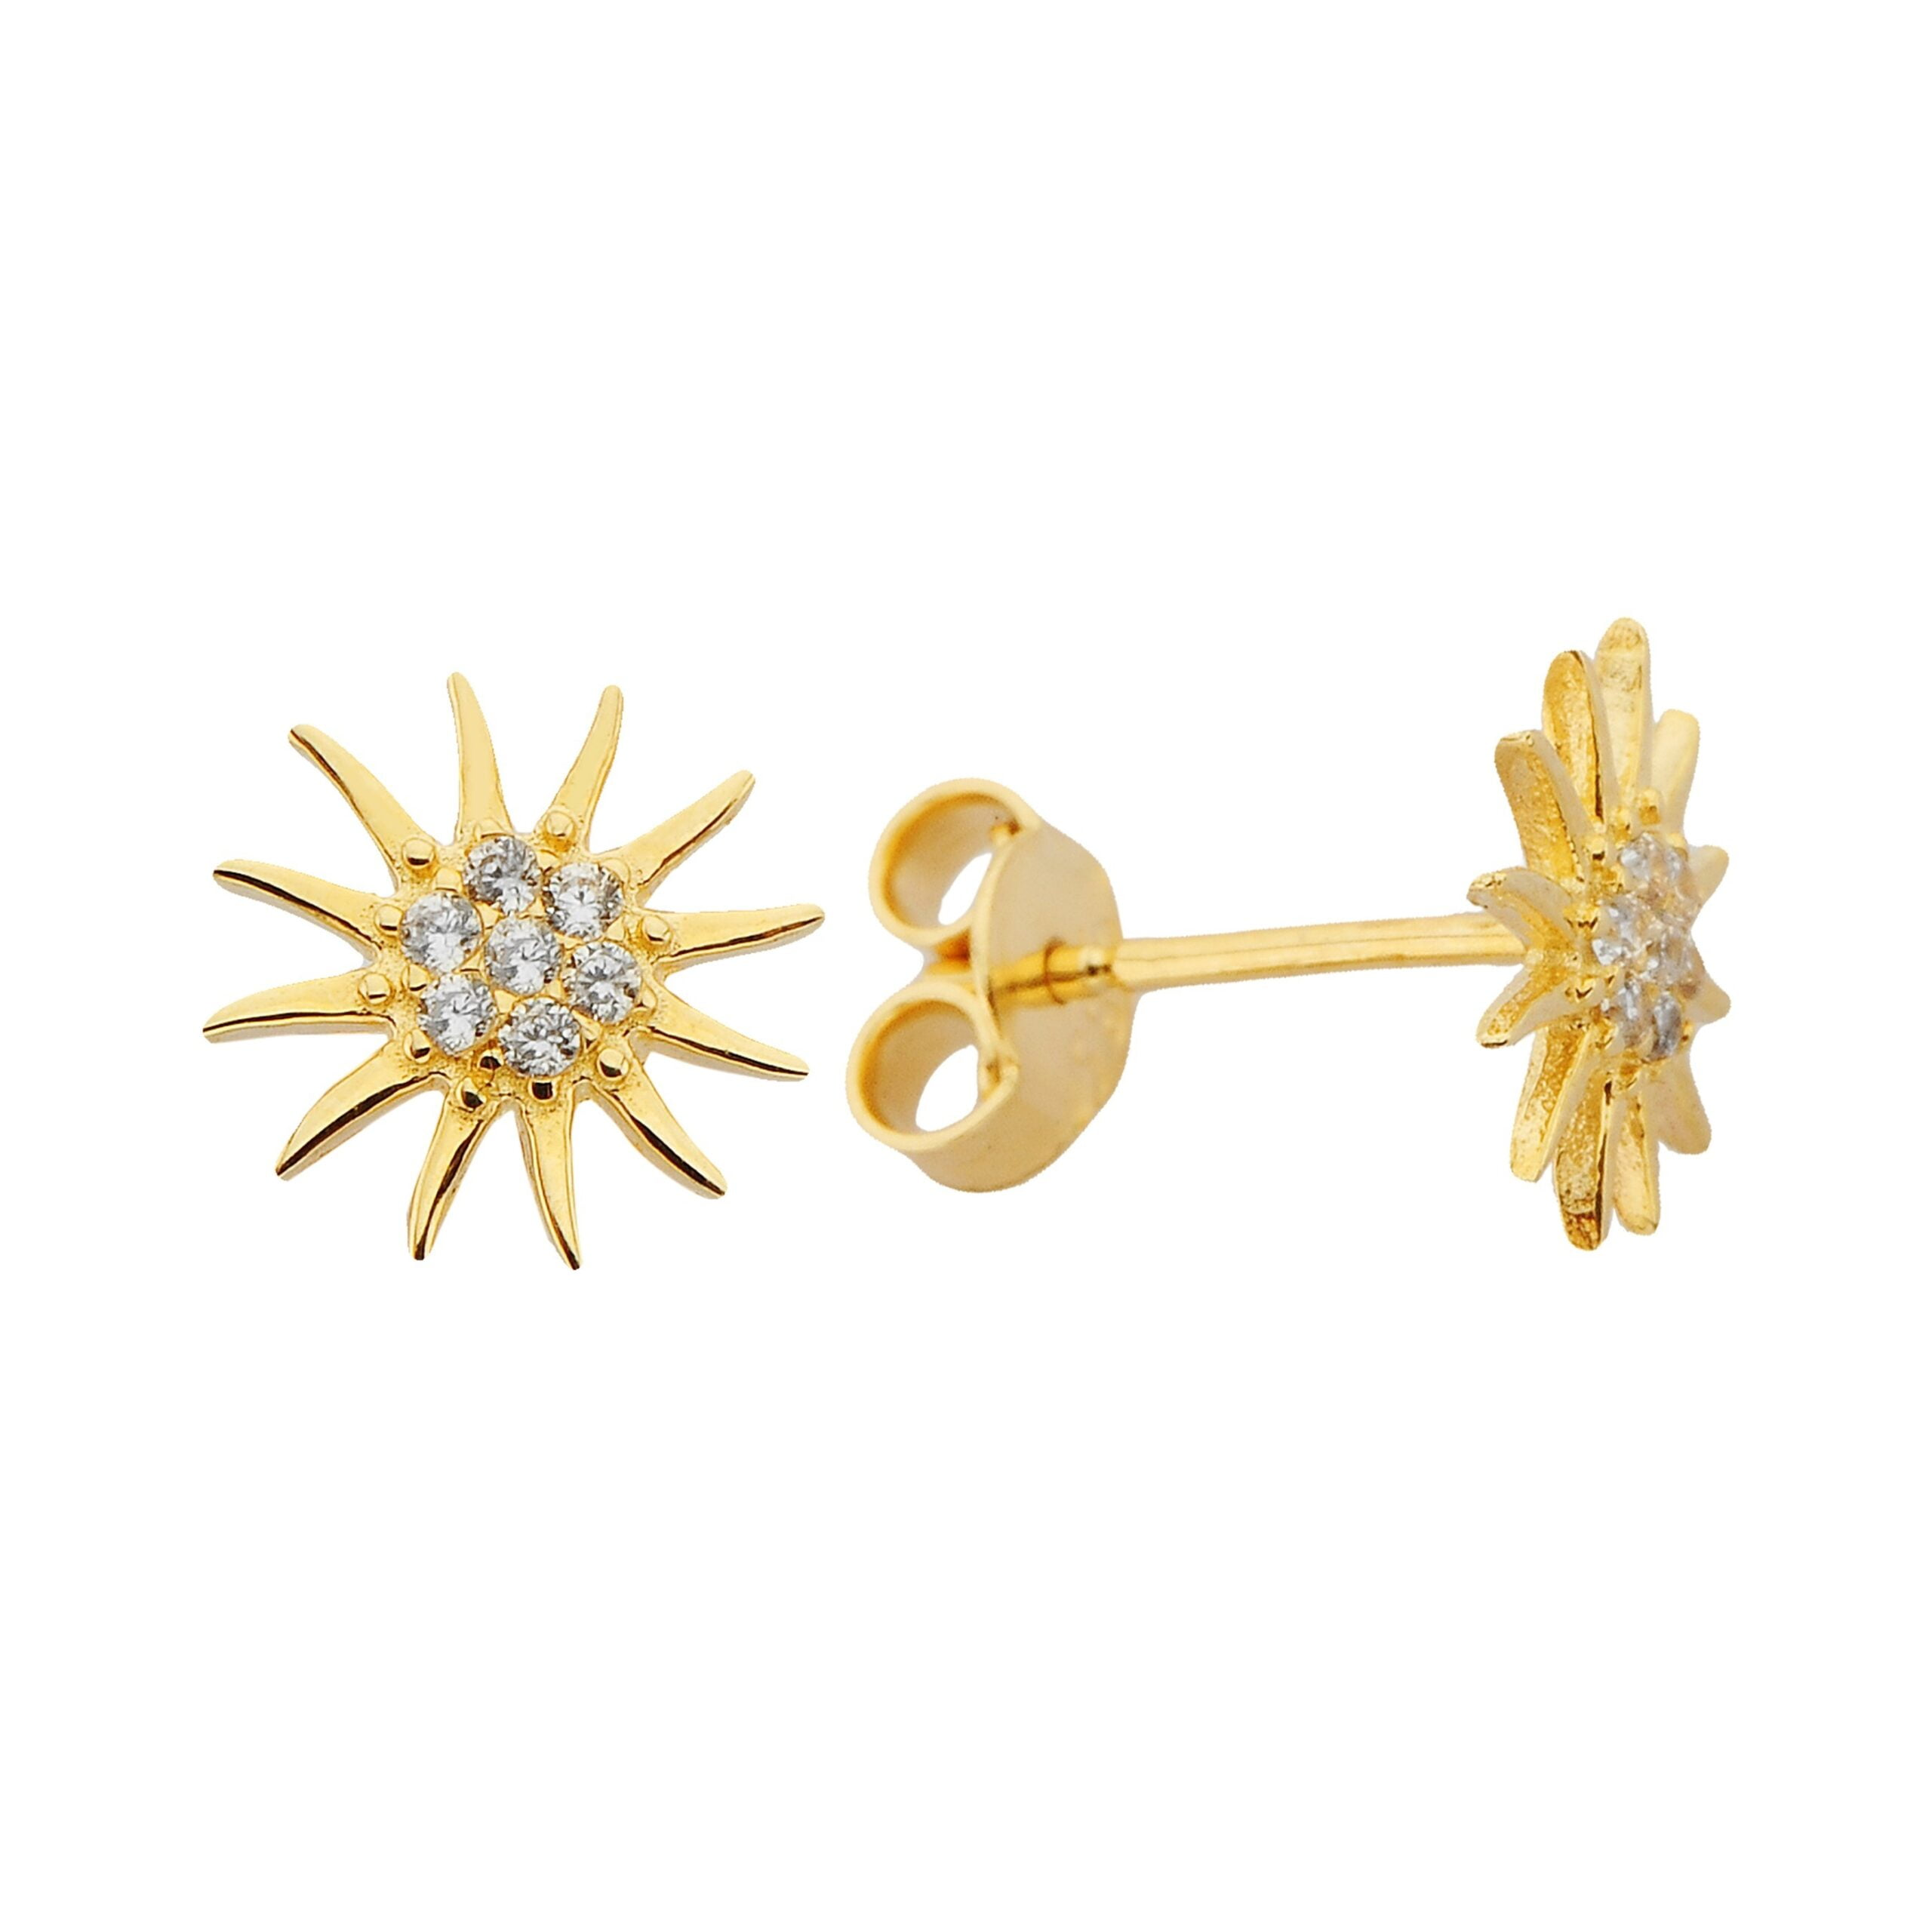 14K Real Solid Gold Sun Stud Earrings for Women Christmas Birthday gift Xmas Mother's Day Zodiac Moon Astrology her girl